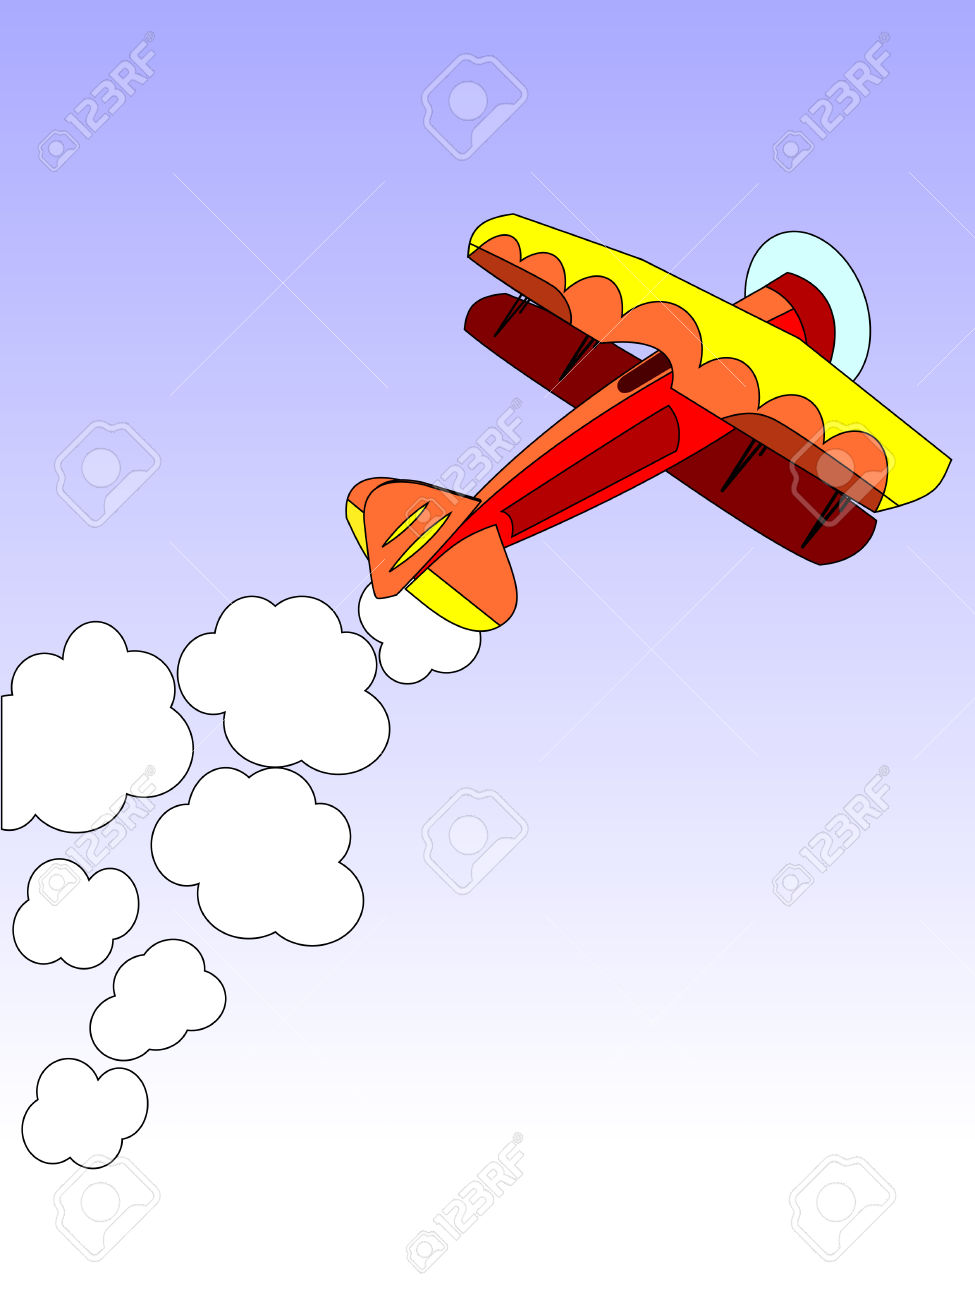 Easy plane clipart svg free Plane Smoke Trail Clip Art – Clipart Free Download svg free